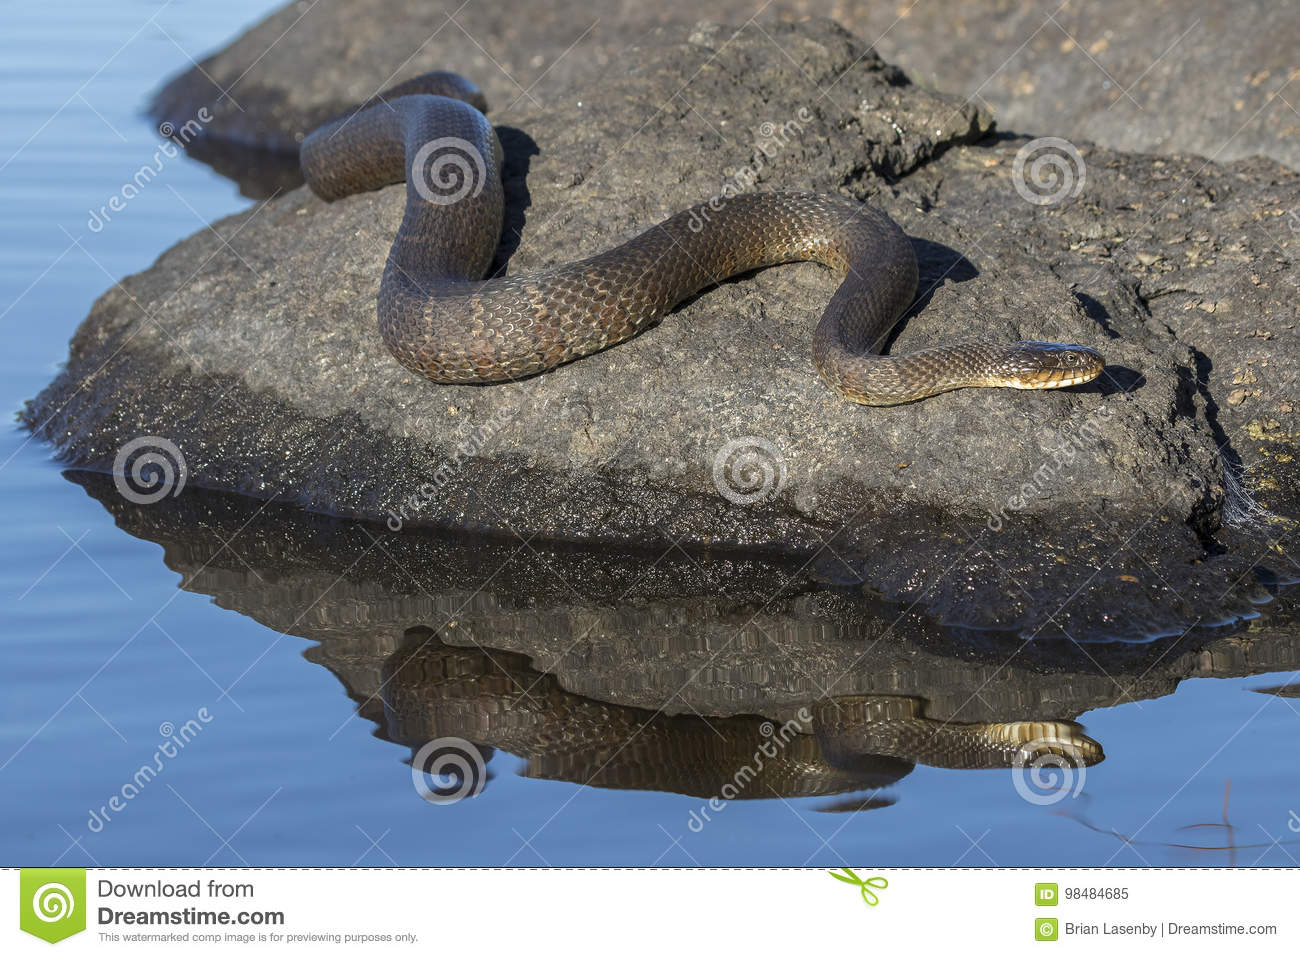 Northern Water Snake Nerodia sipedon sipedon basking on a rock